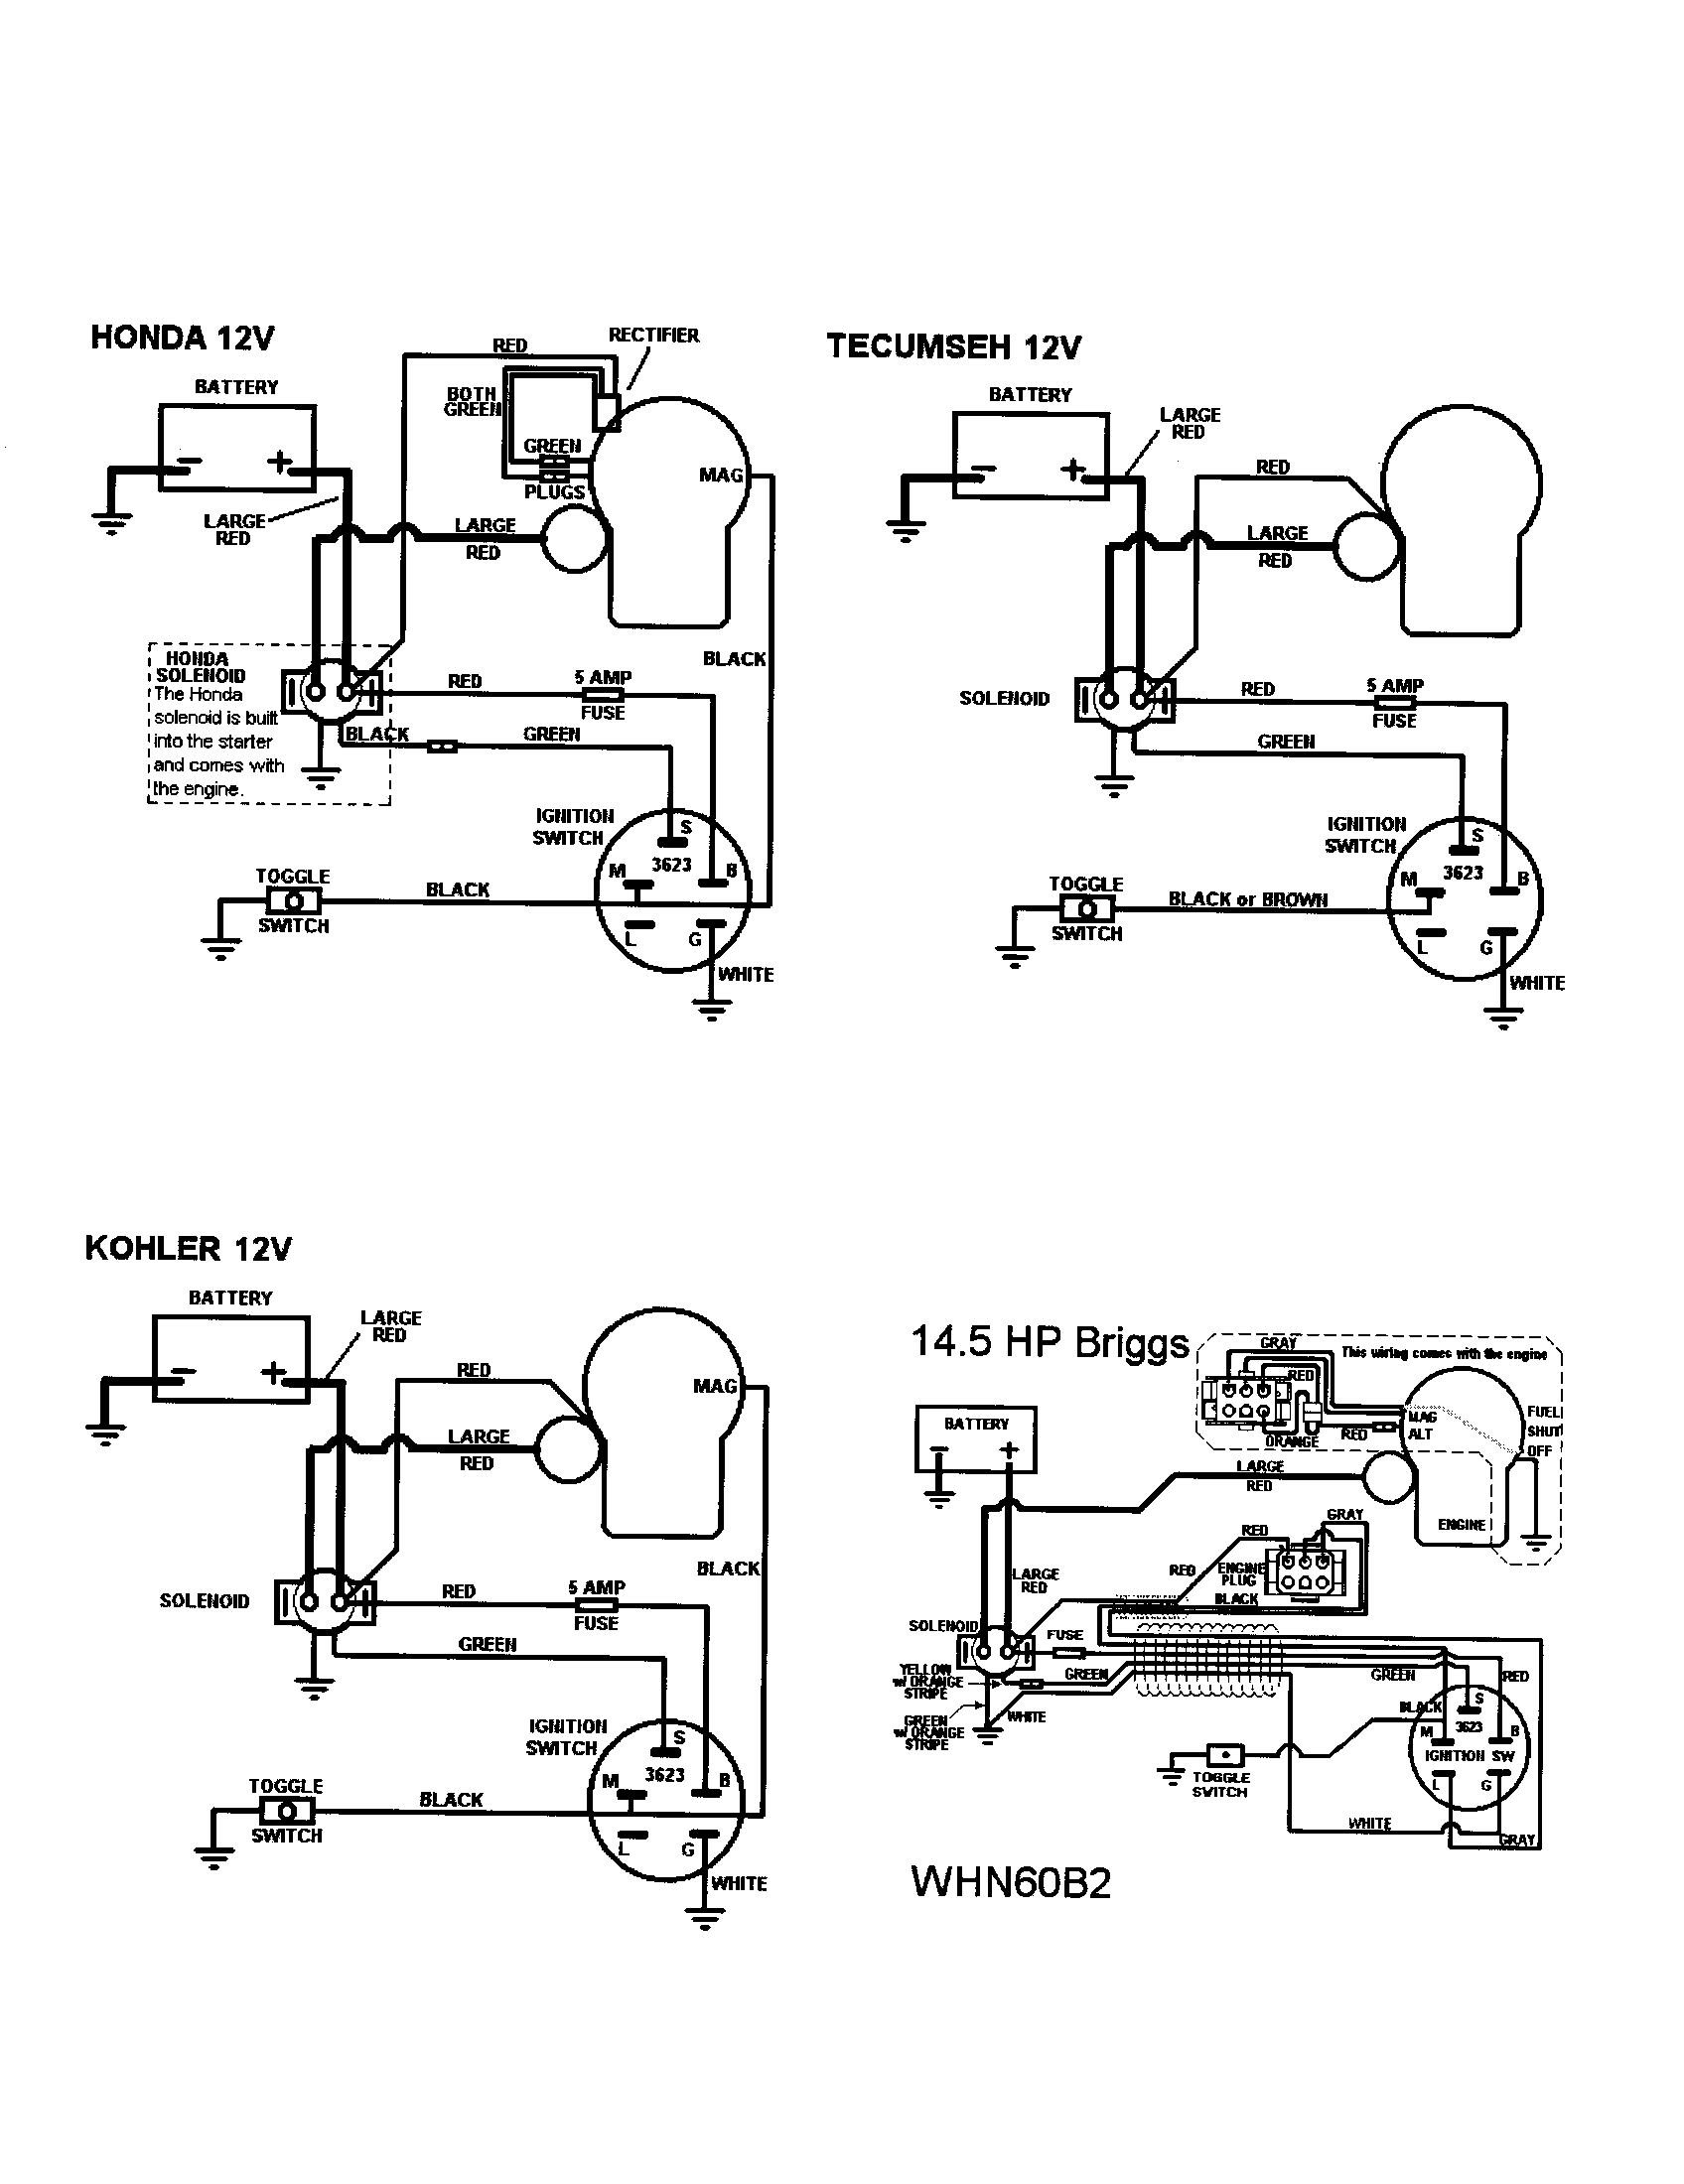 dixon mower wiring diagram | wiring diagram toro mercial mower wiring diagram free download dixon lawn mower wiring diagram free download #3